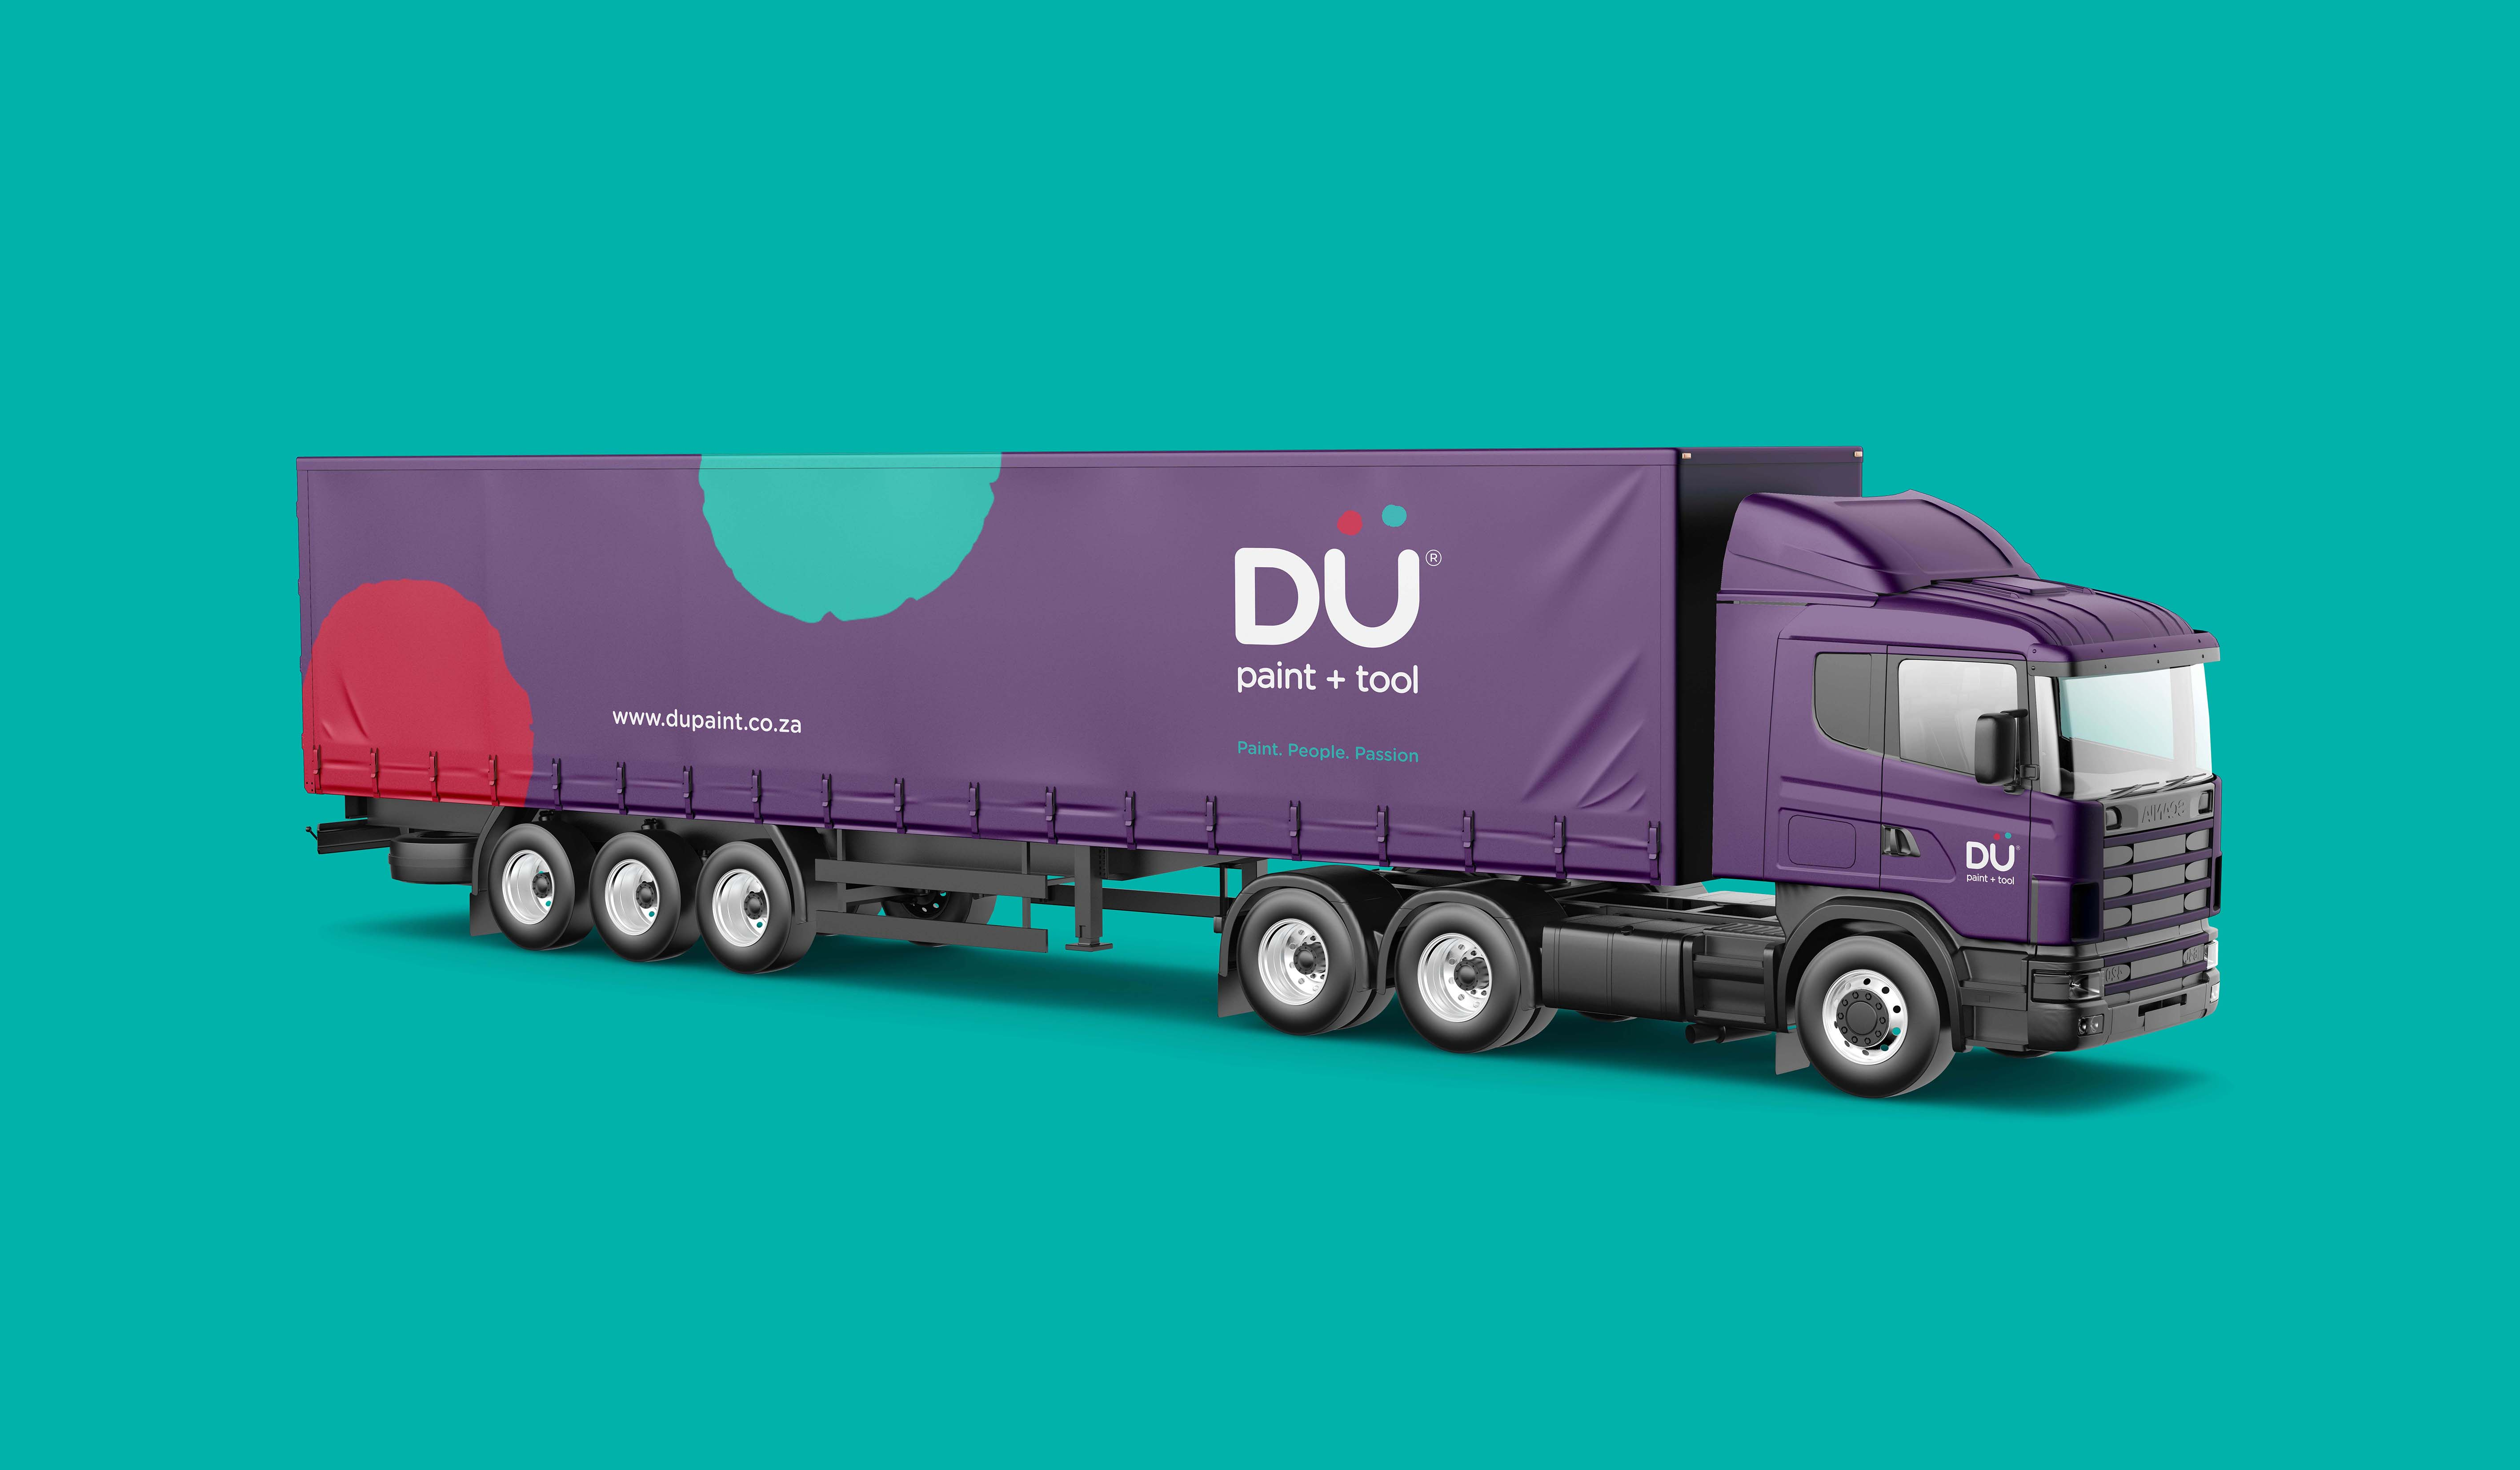 Creative Caterpillar client Dü Paint and Tool truck logo application.